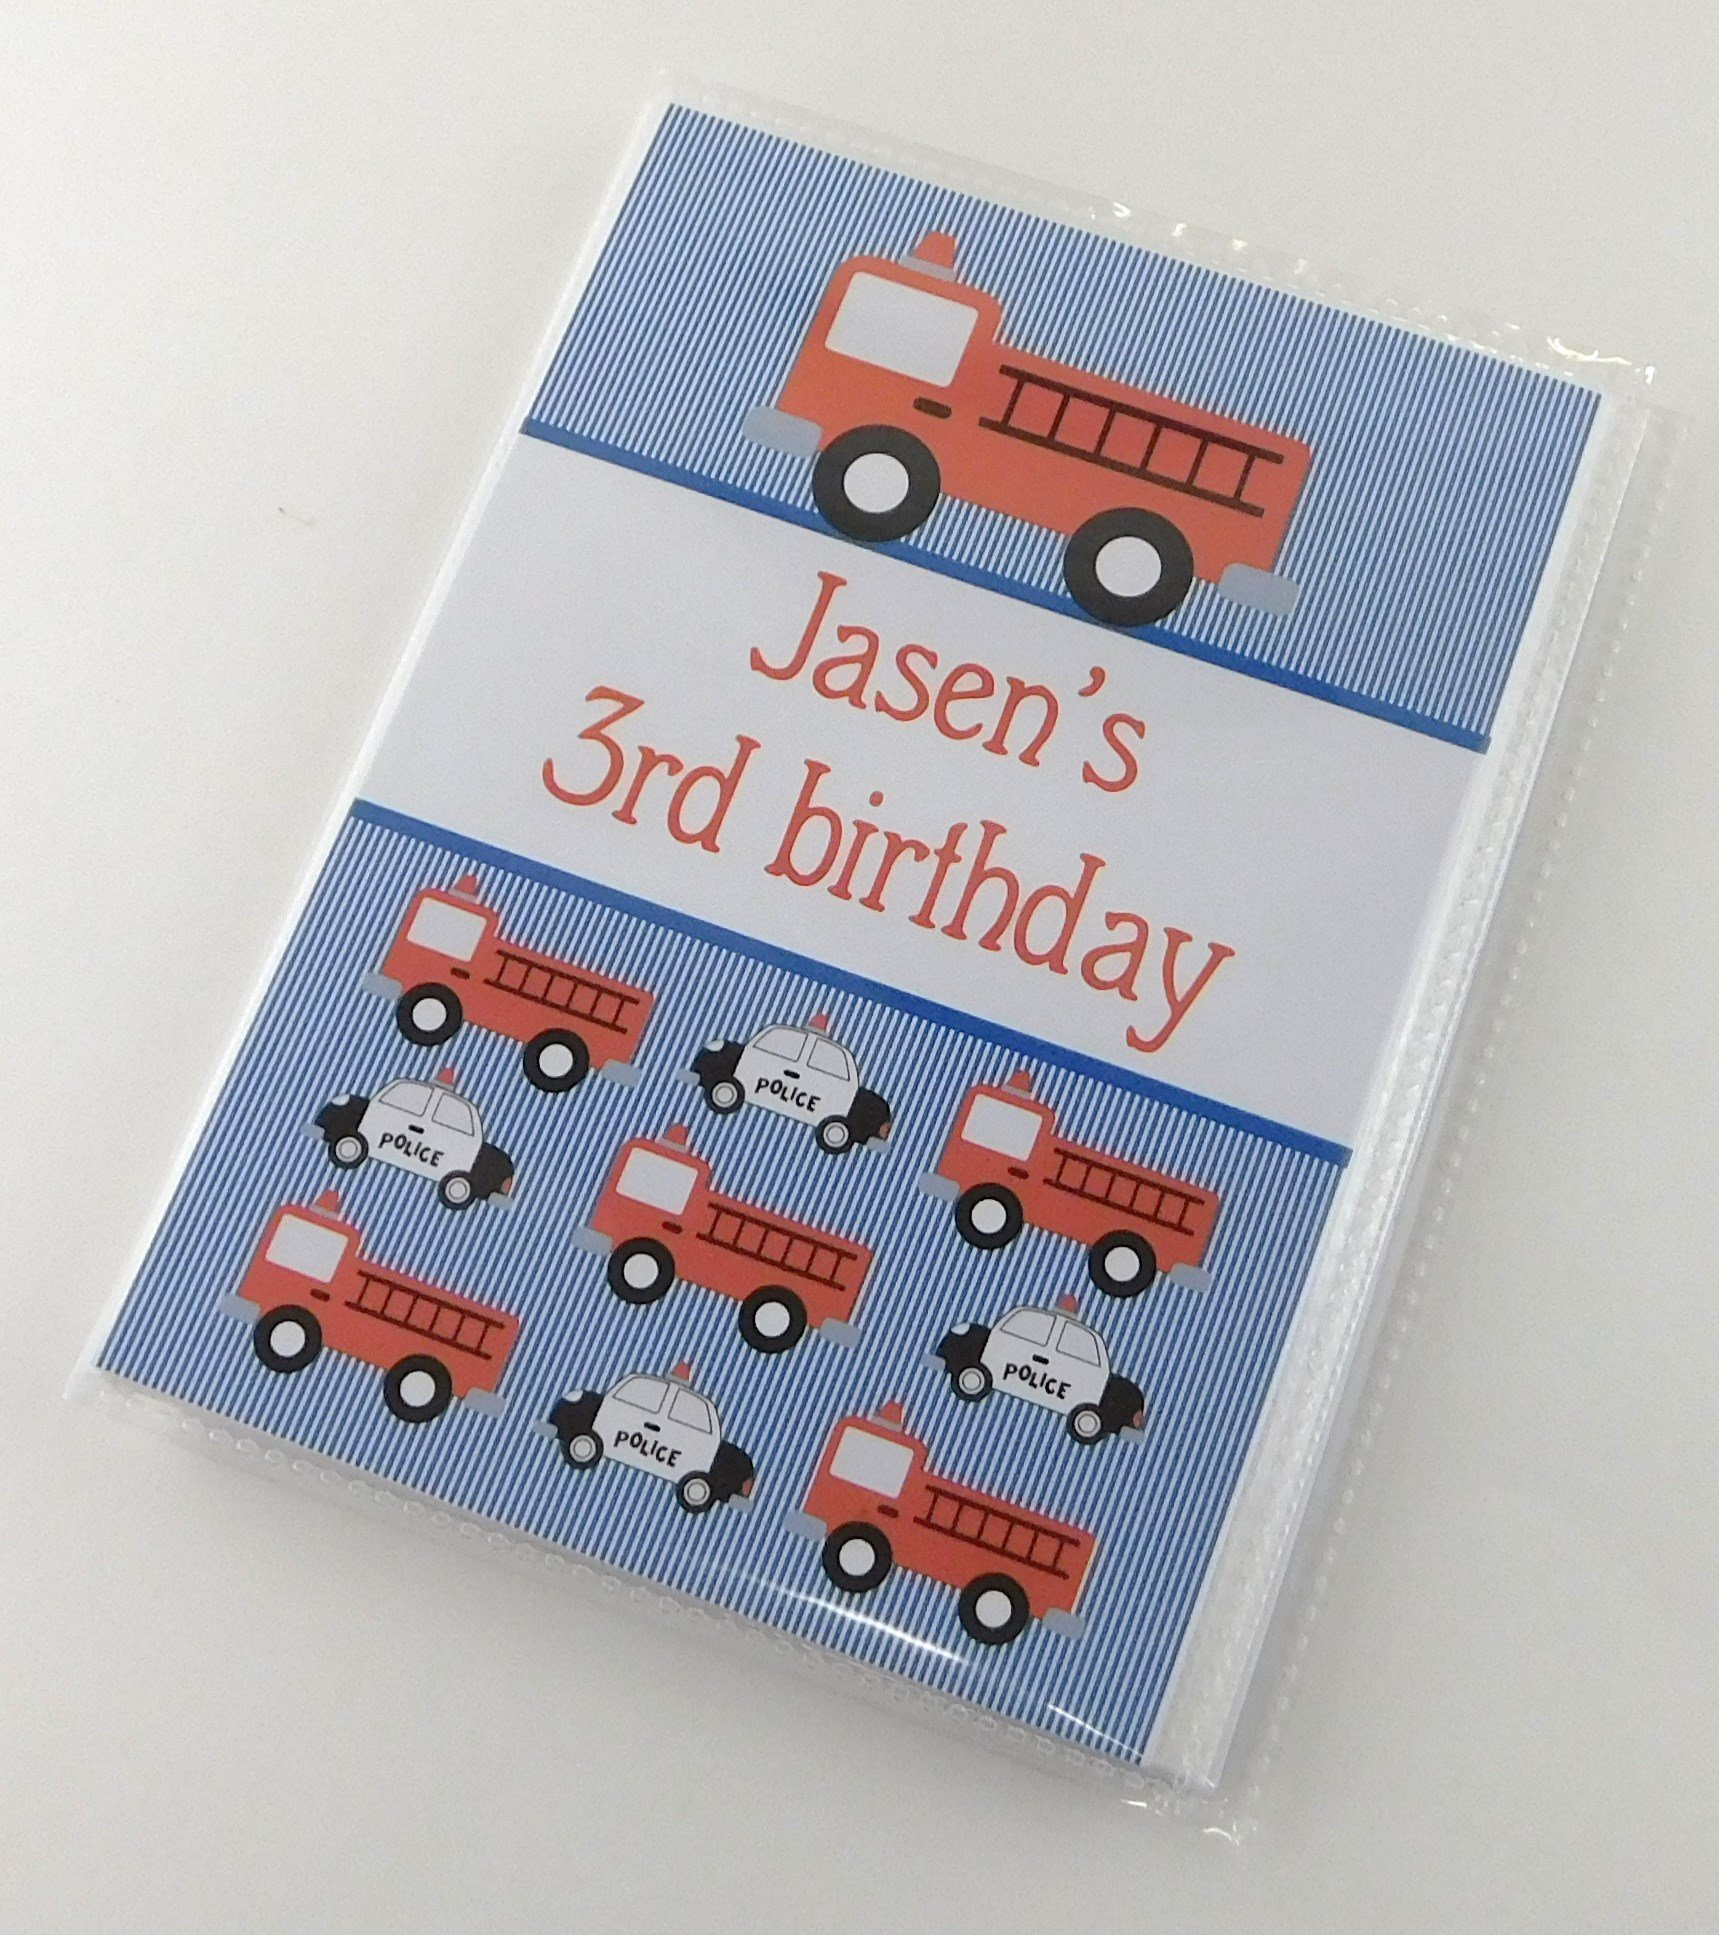 Boy Photo Album with Name IA#725 Personalized Birthday Gift 4x6 or 5x7 Picture Red Fire Truck Firetruck